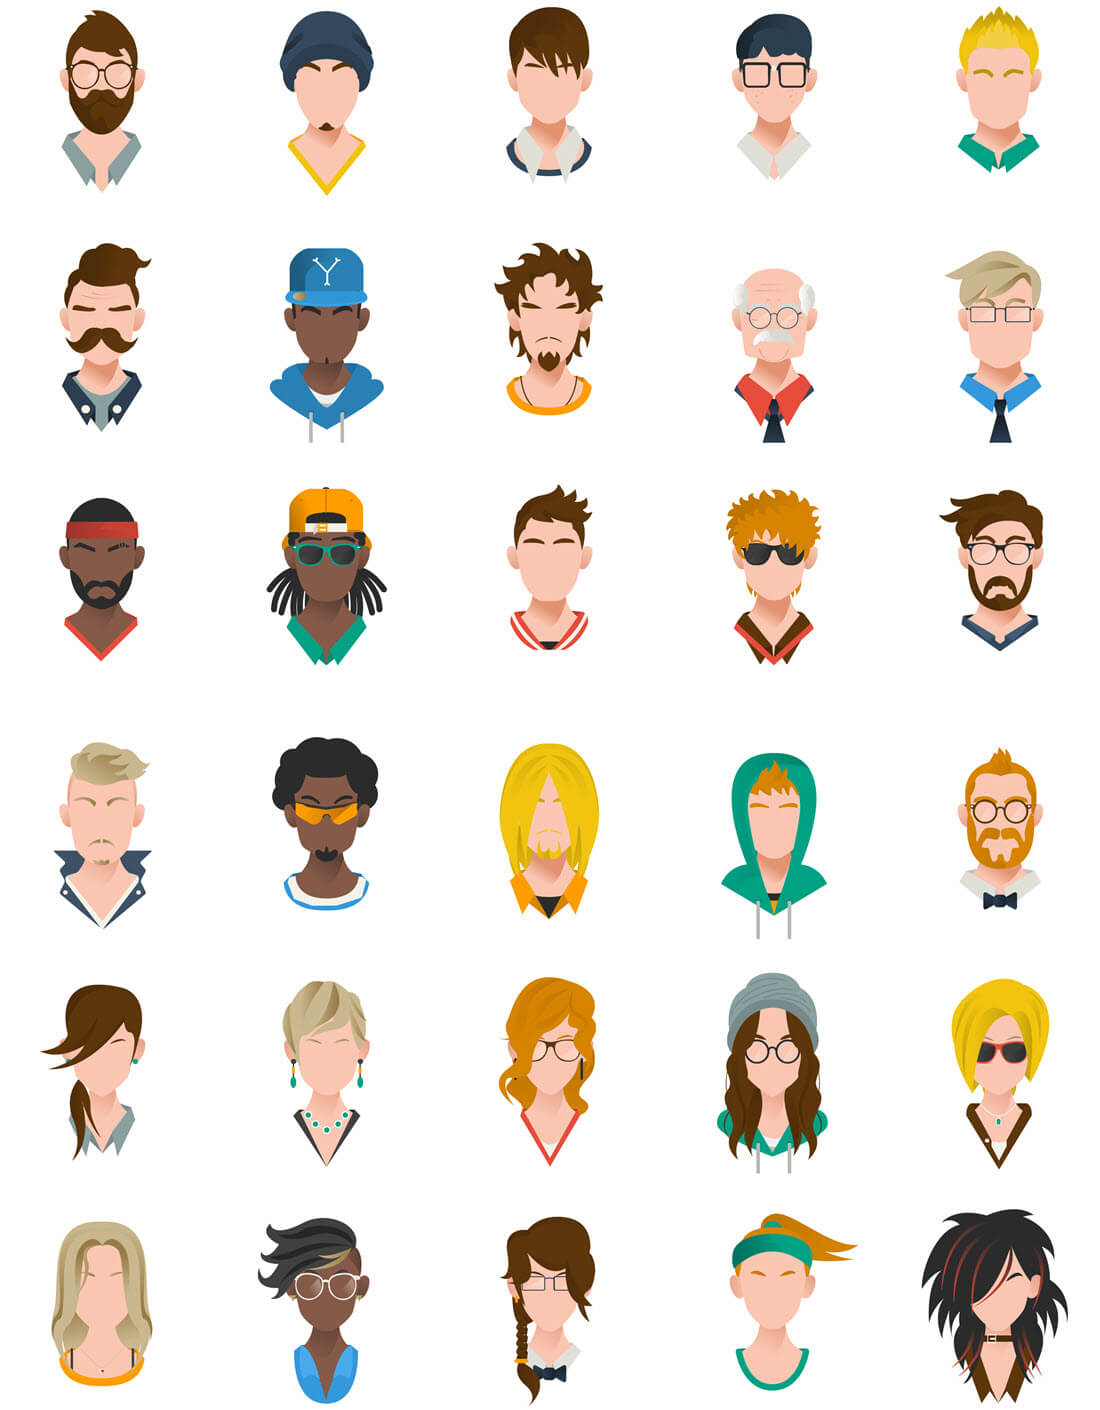 Add Serious Fun with 125+ Colorful Characters and Avatars ...